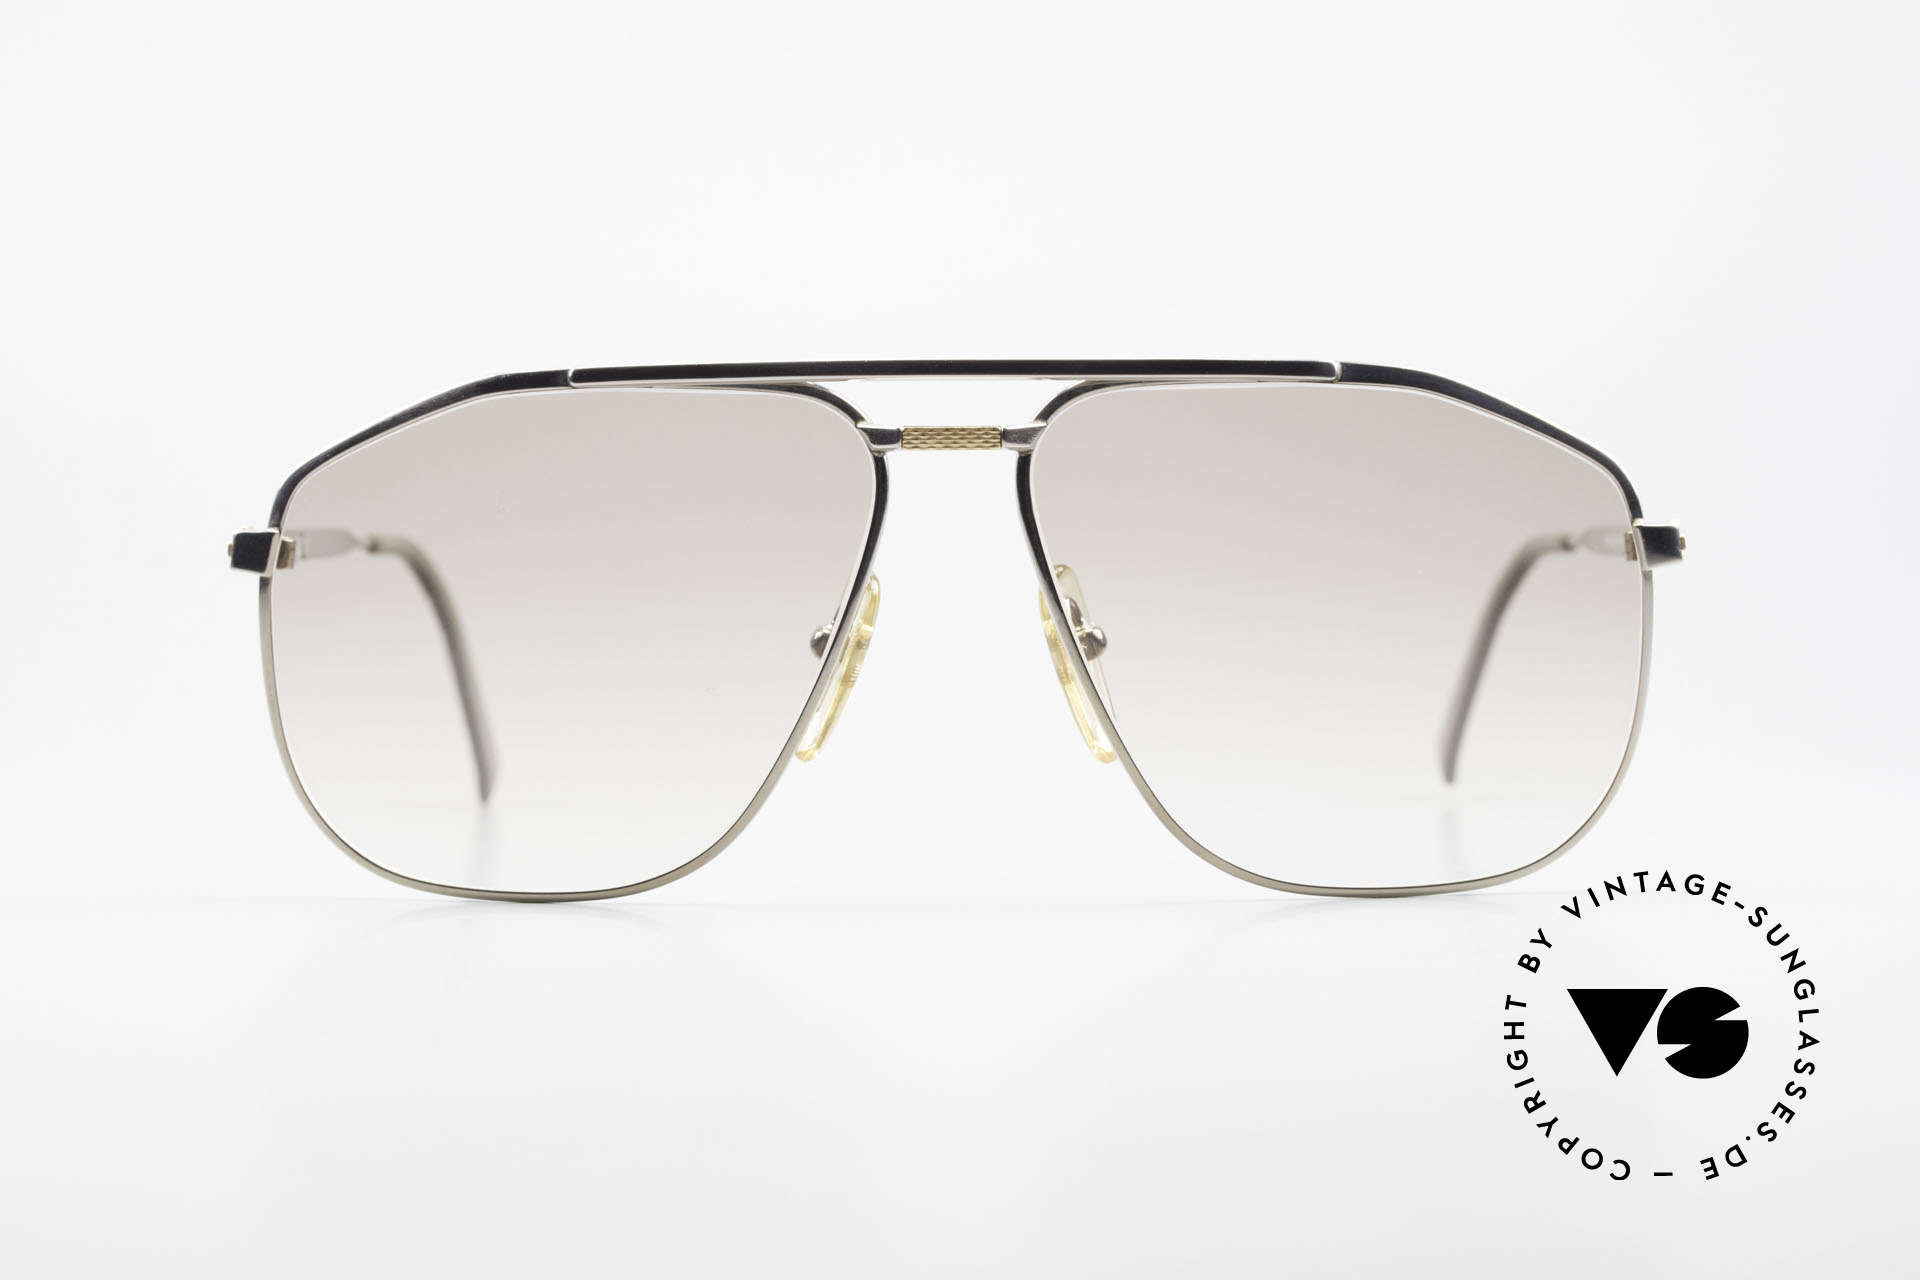 Dunhill 6096 Titanium Frame 18ct Solid Gold, sophisticated 90's Titanium designer glasses by Dunhill, Made for Men